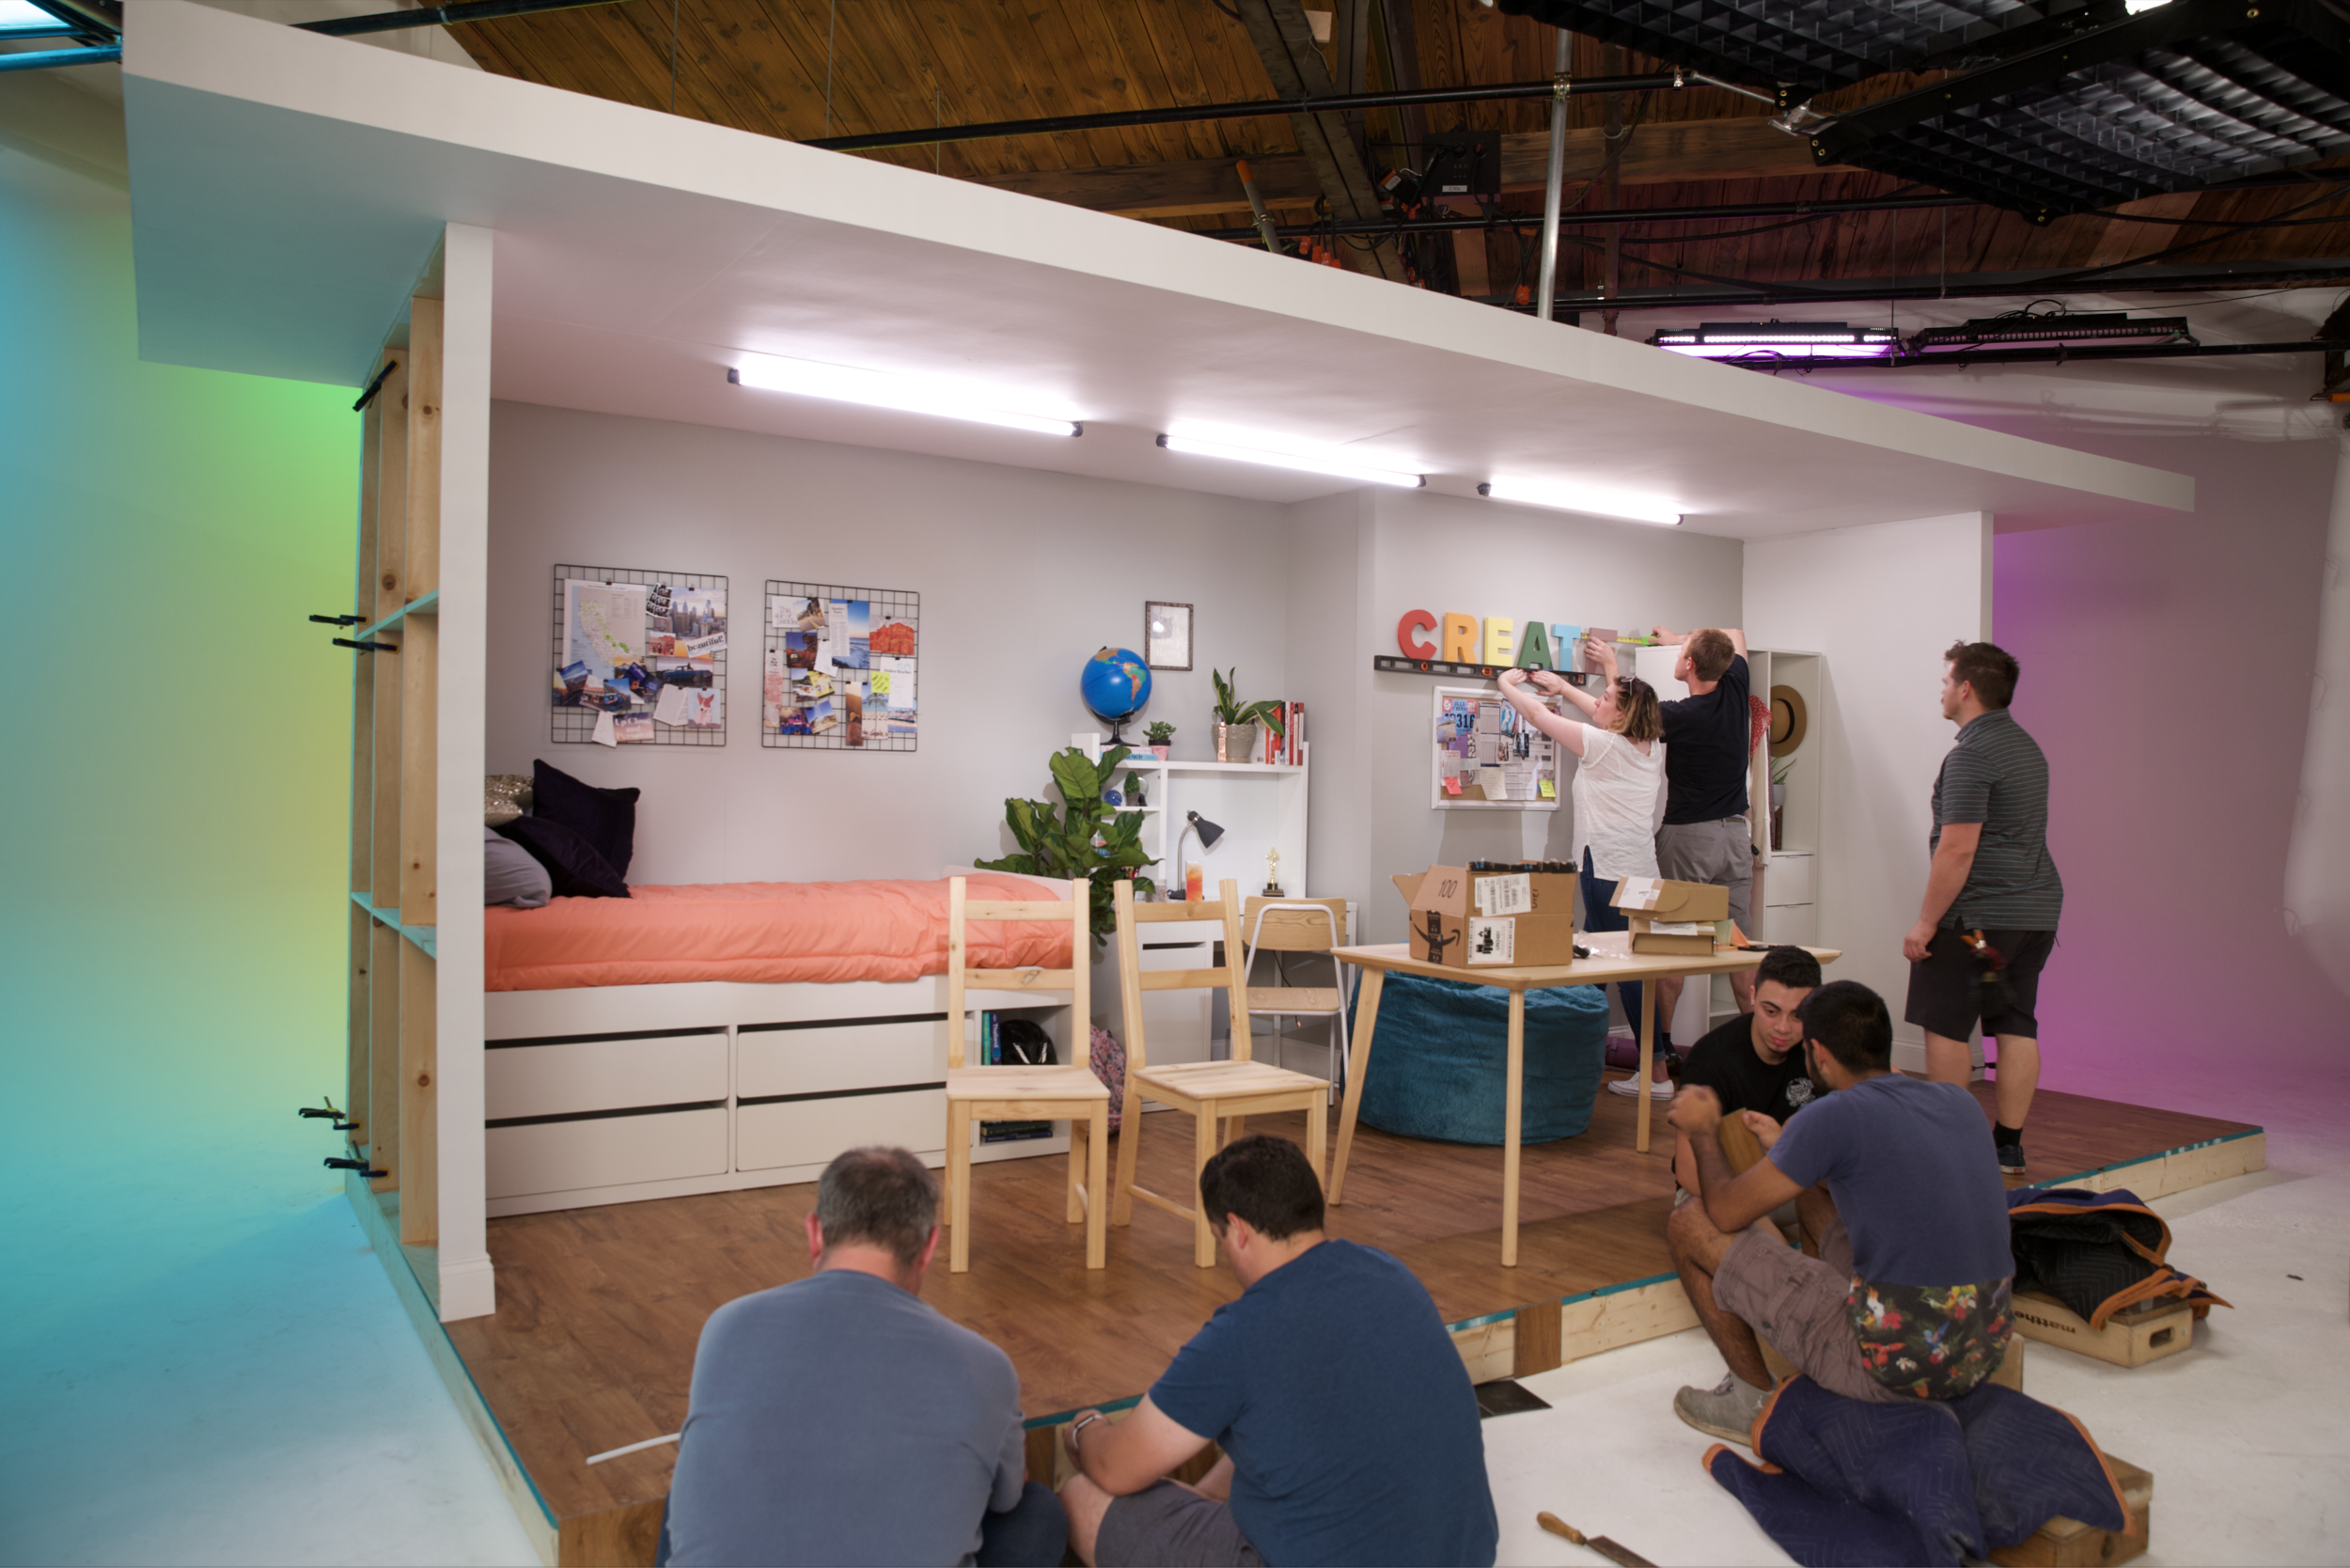 When we were first approached by Crayola and asked to build sets to replicate a child's bedroom or playroom, we thought it might be outside of our capabilities. But we went into research mode, rolled up our sleeves, and now building sets is one of our most welcome challenges. Now, we feel there's no challenge we aren't up to.